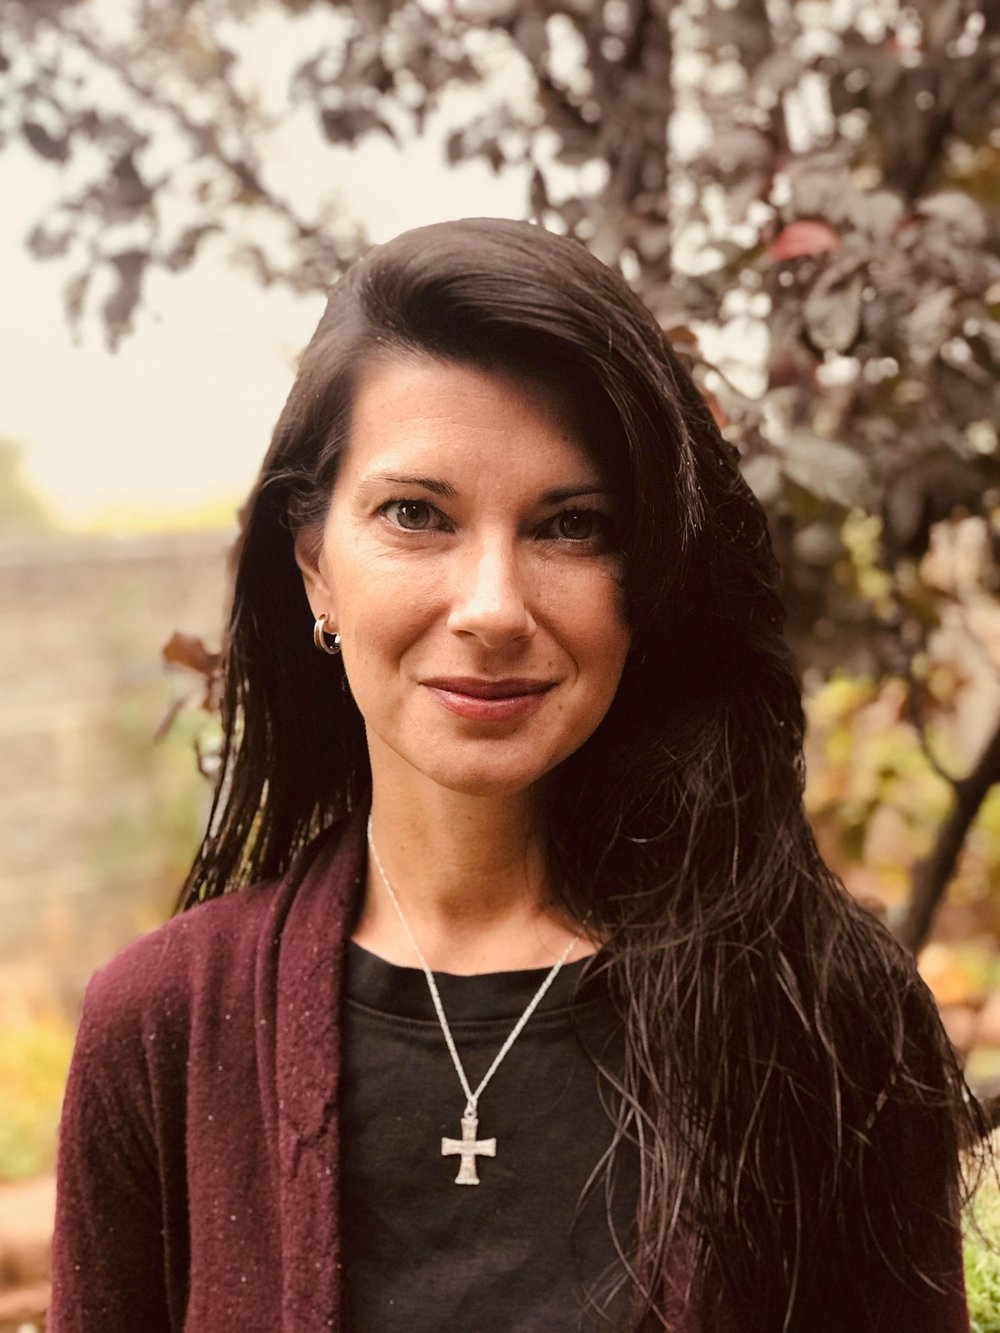 Lauren huggins - Lauren is a priest's wife, homeschool mother of four, registered nurse, and has spent many hours singing in the Orthodox Christian church where she lives out her faith. She resides in Colorado and enjoys the beauty of God's creation.